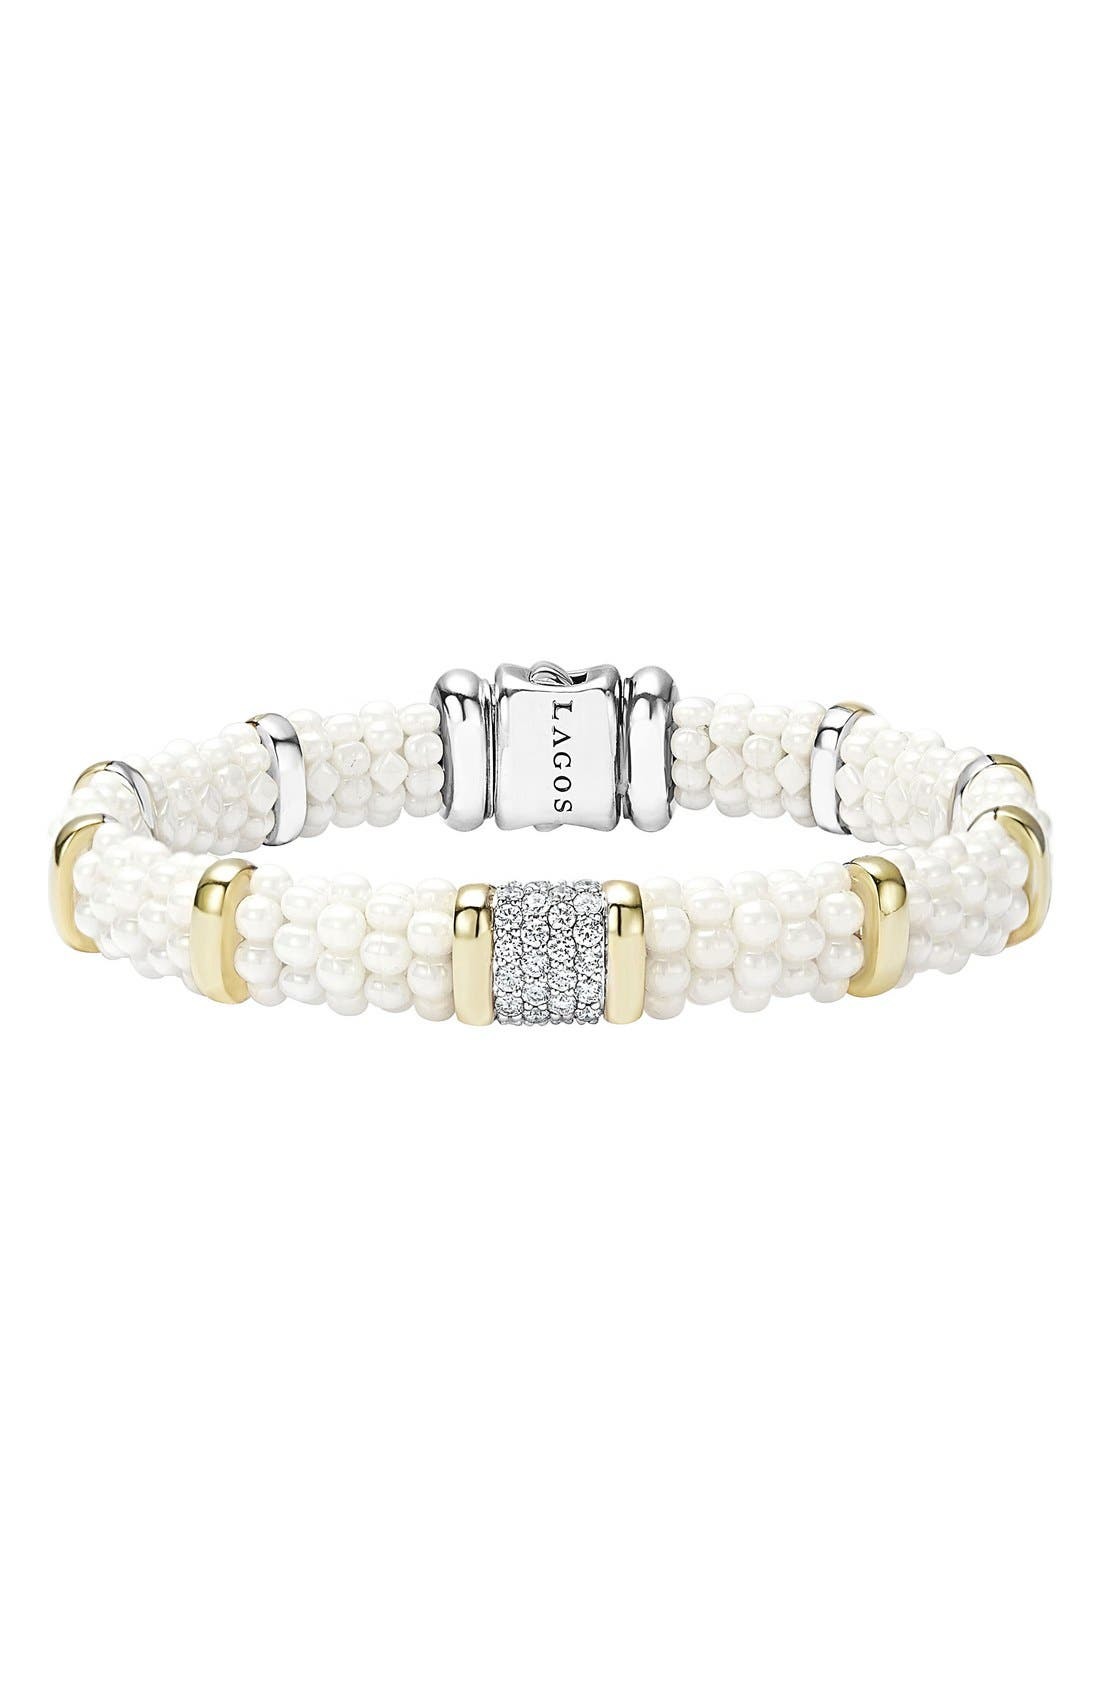 'White Caviar' Diamond Station Bracelet,                             Main thumbnail 1, color,                             White Caviar